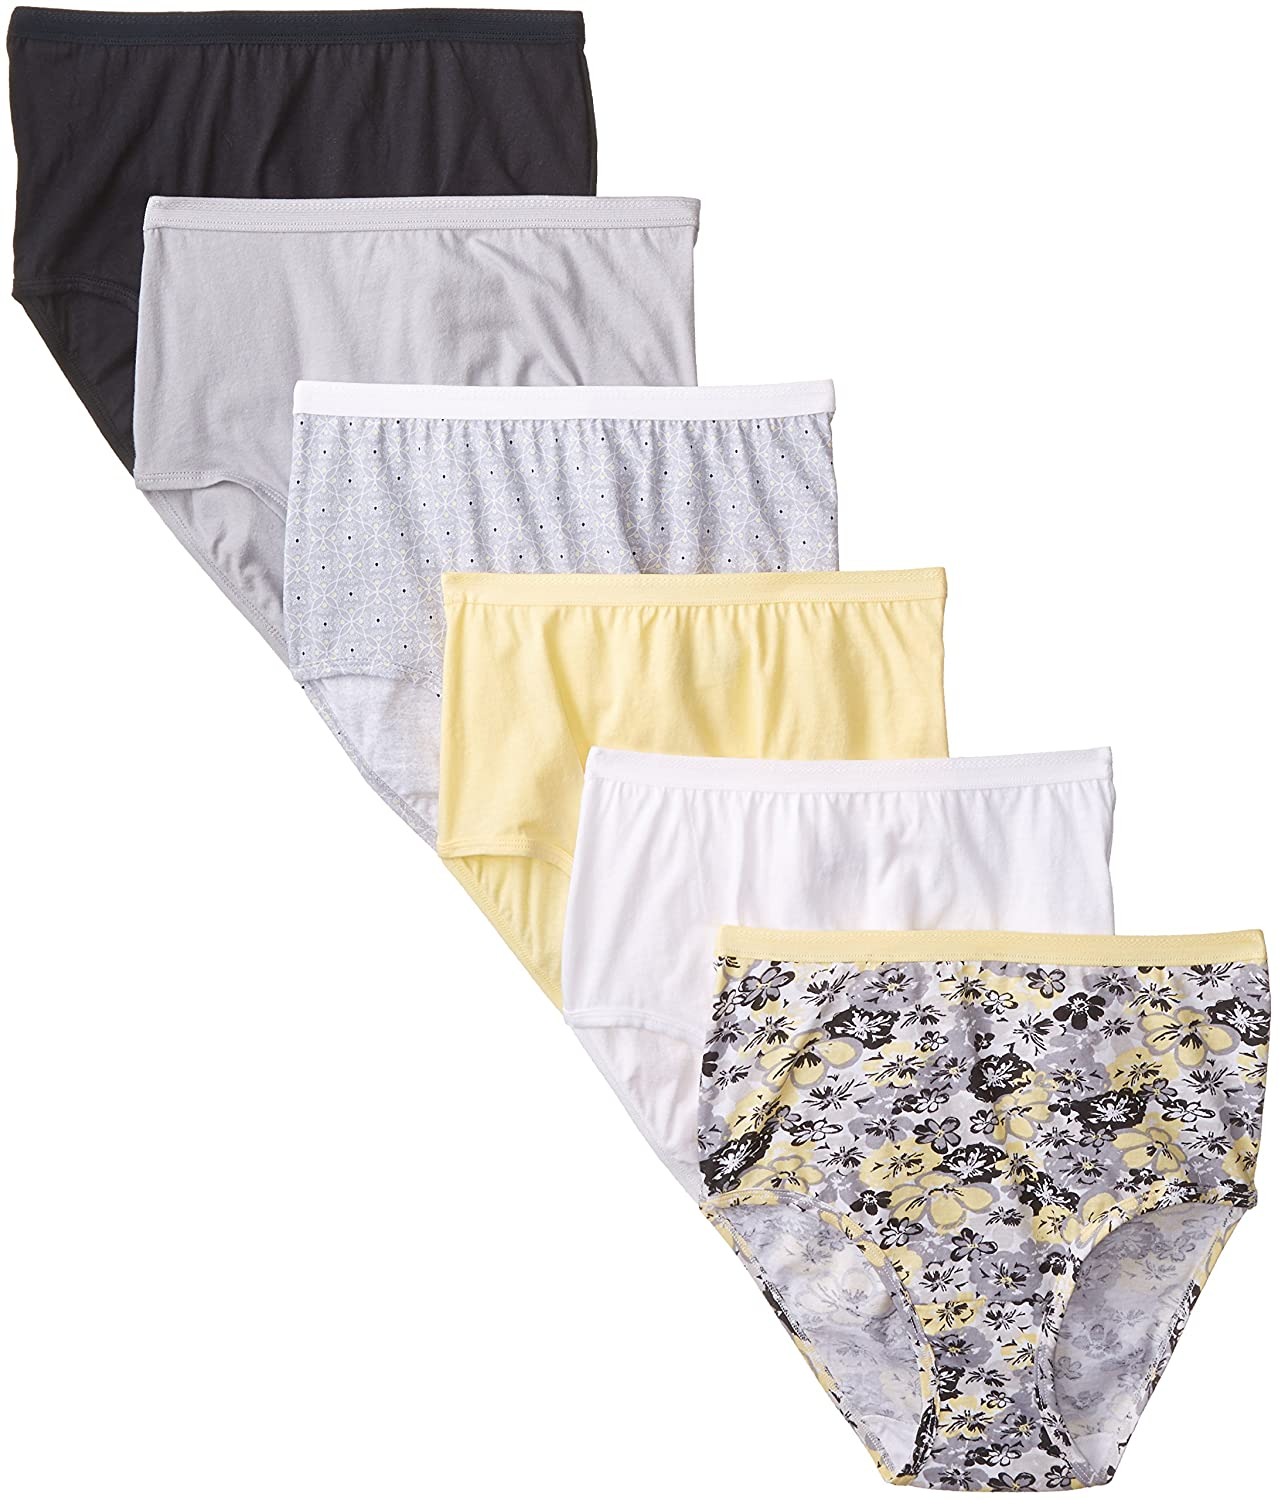 Fruit of the Loom Womens 6 pack Cotton Brief Panties at Amazon Womens Clothing store: